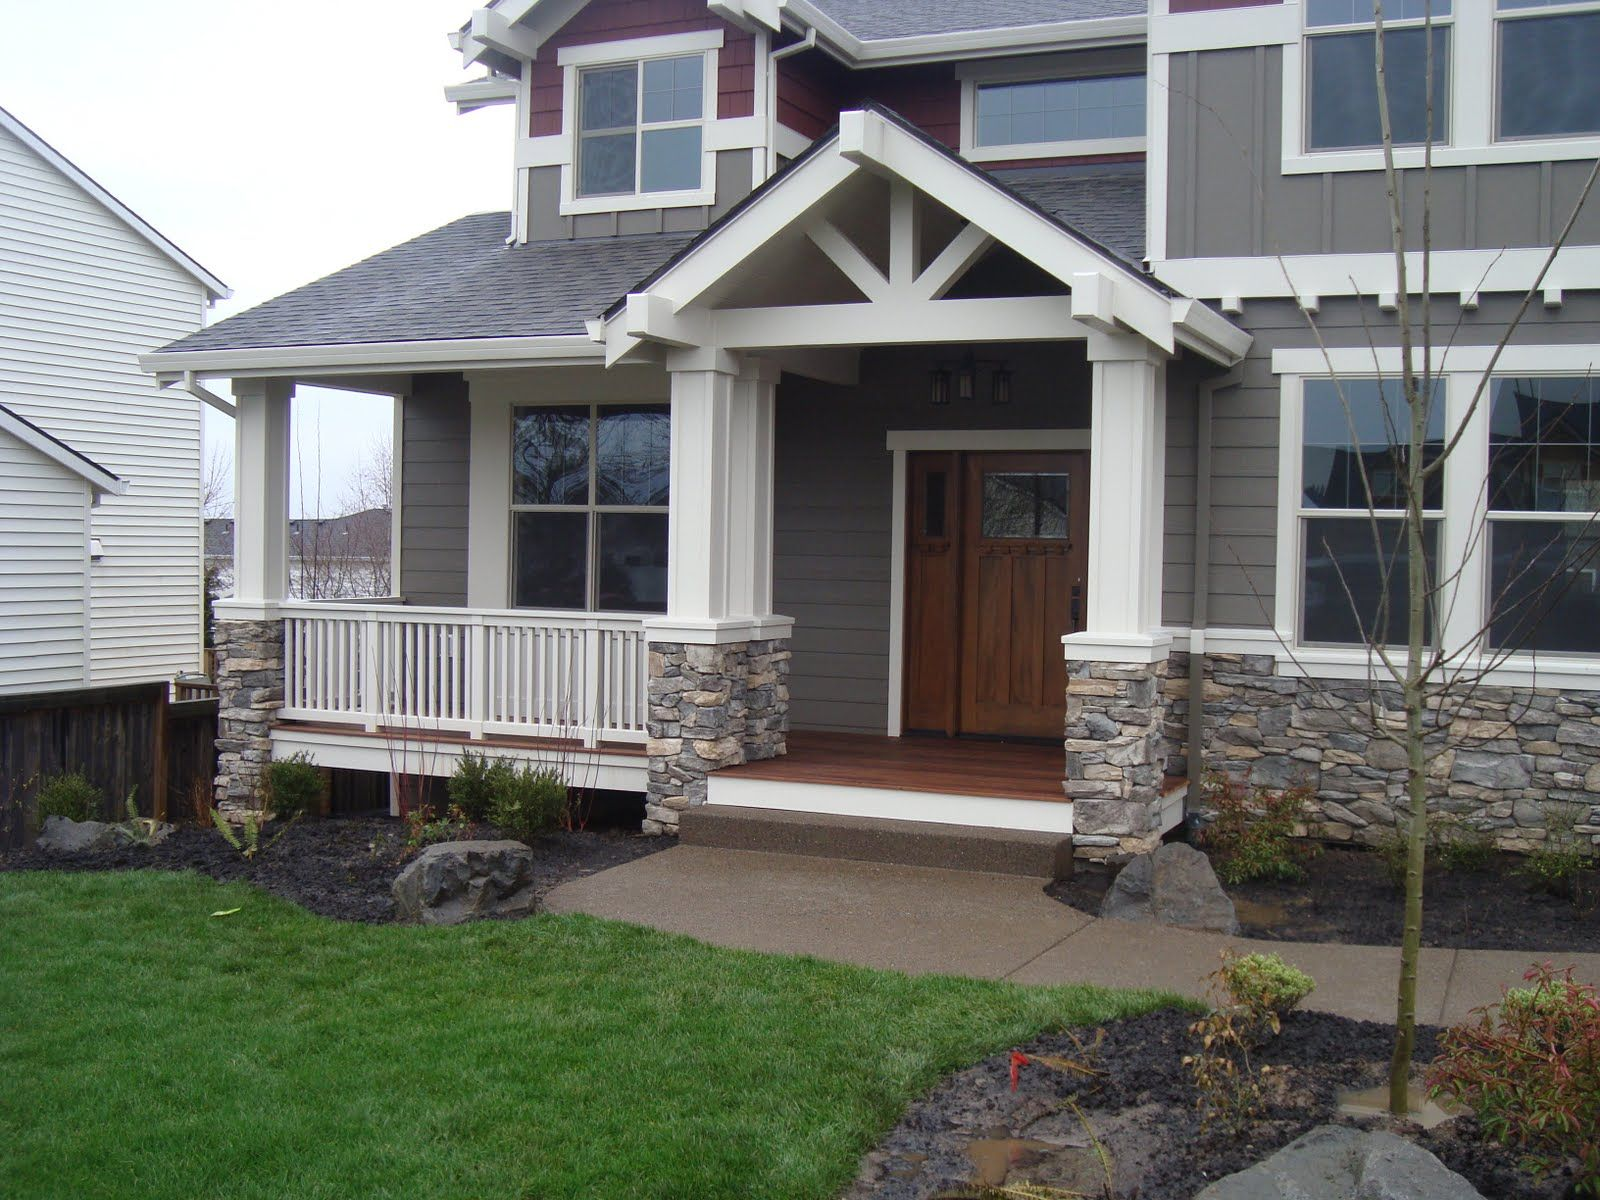 Garage Exterior Rock Vaneer Siding Halgren Construction